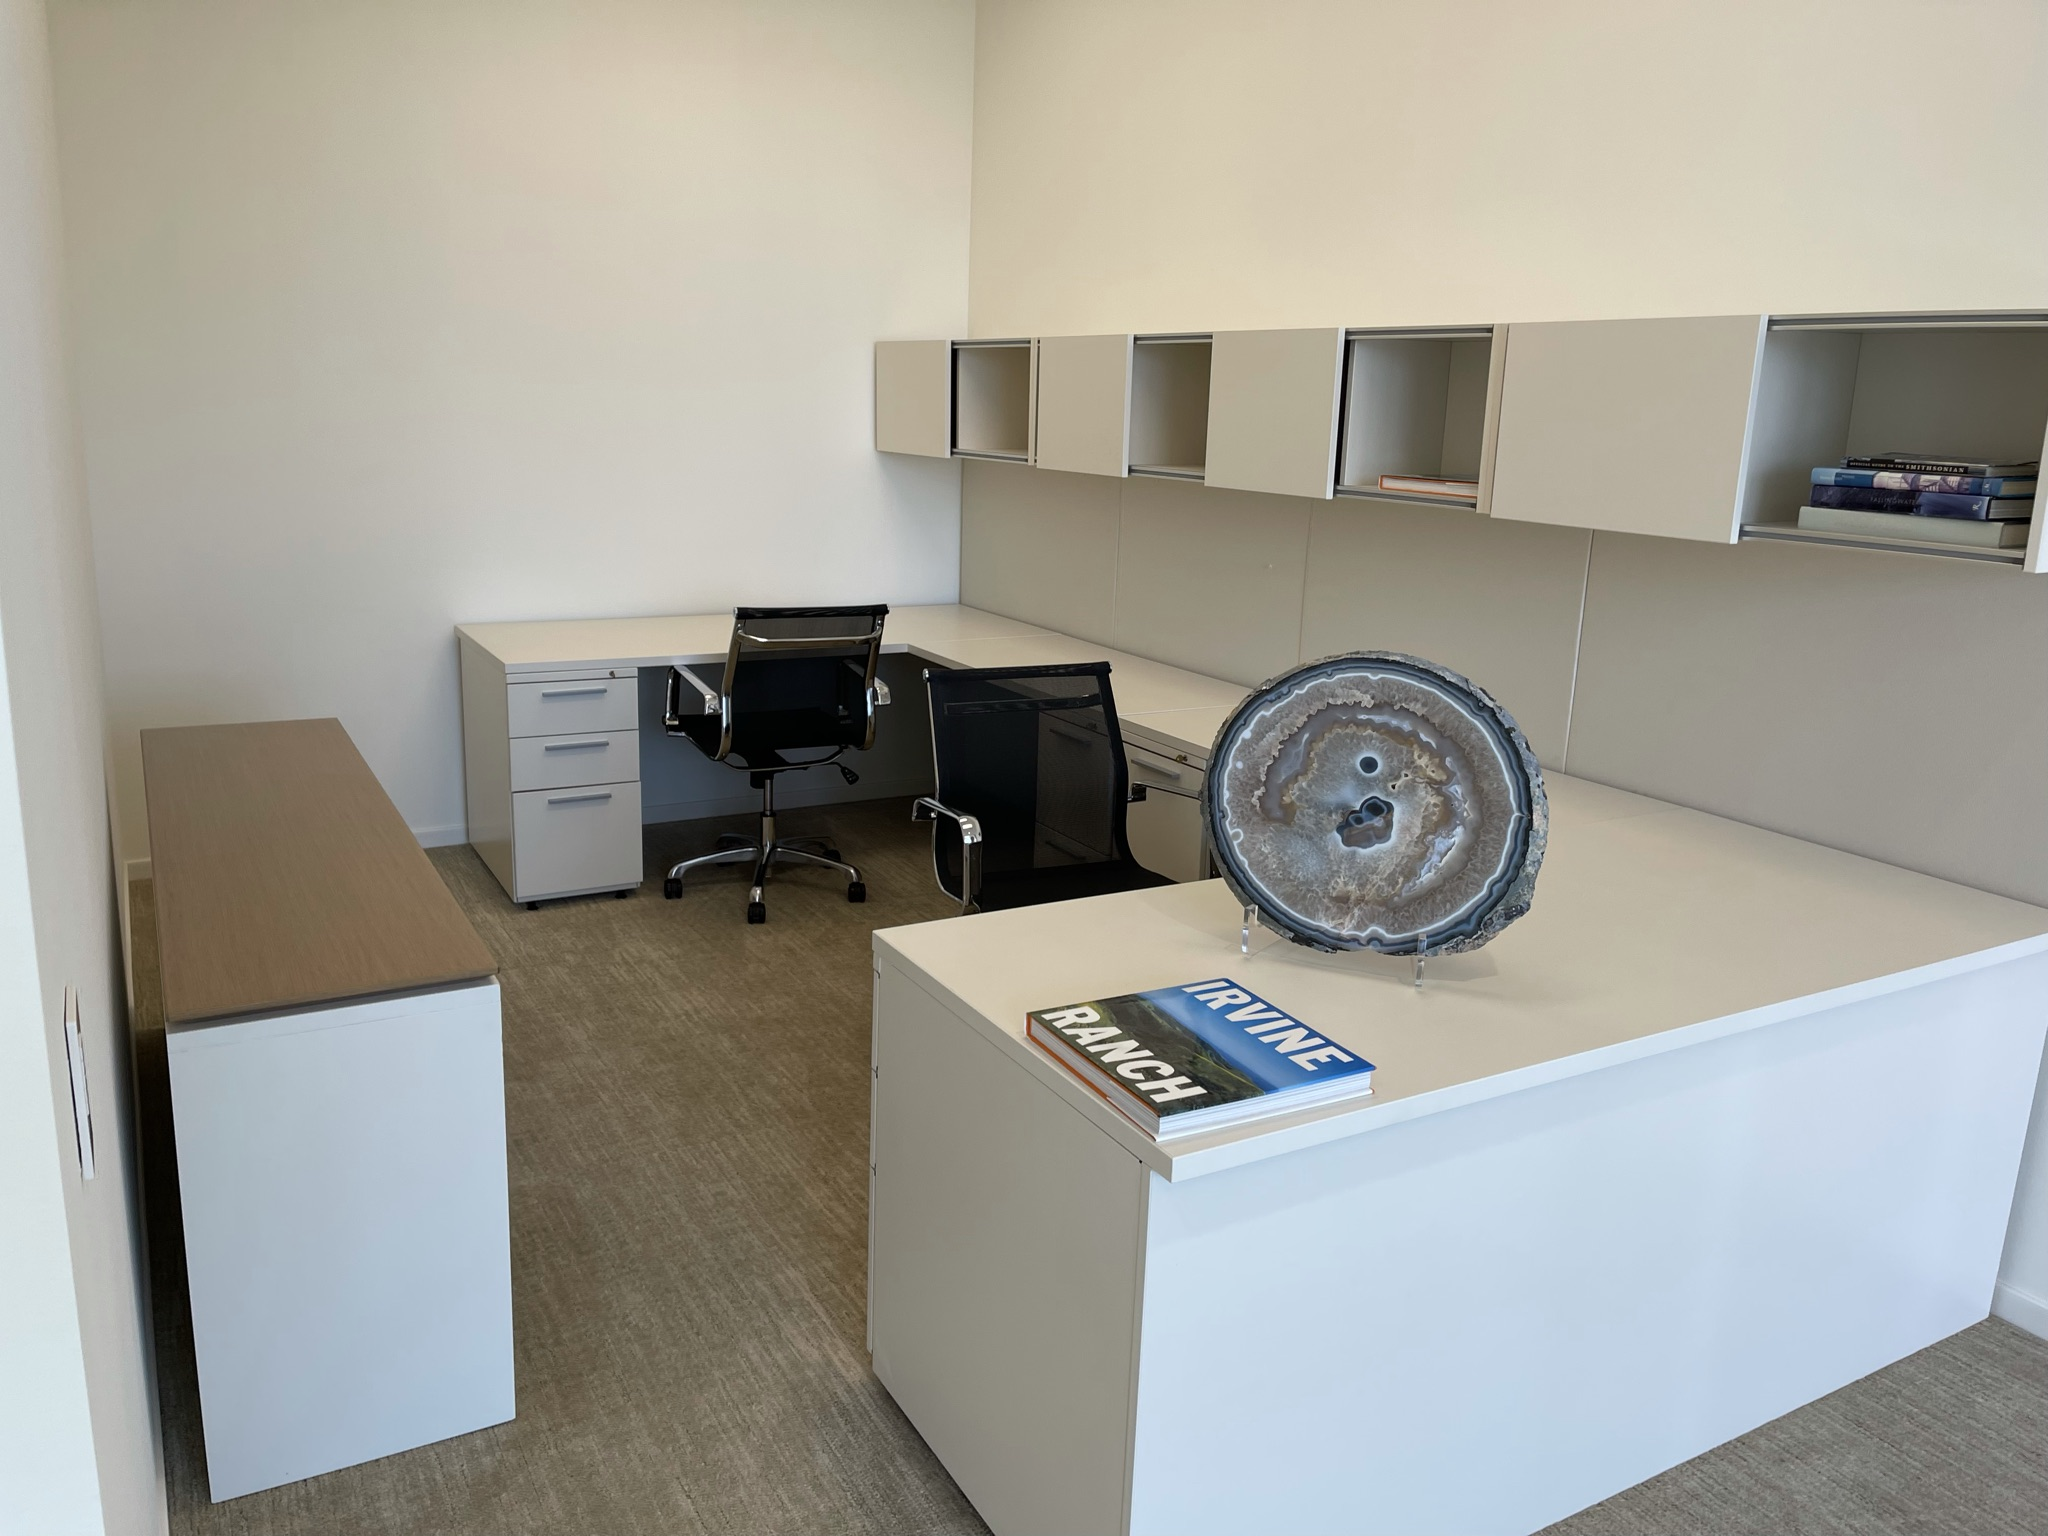 The Employee Work Area Before Renovations